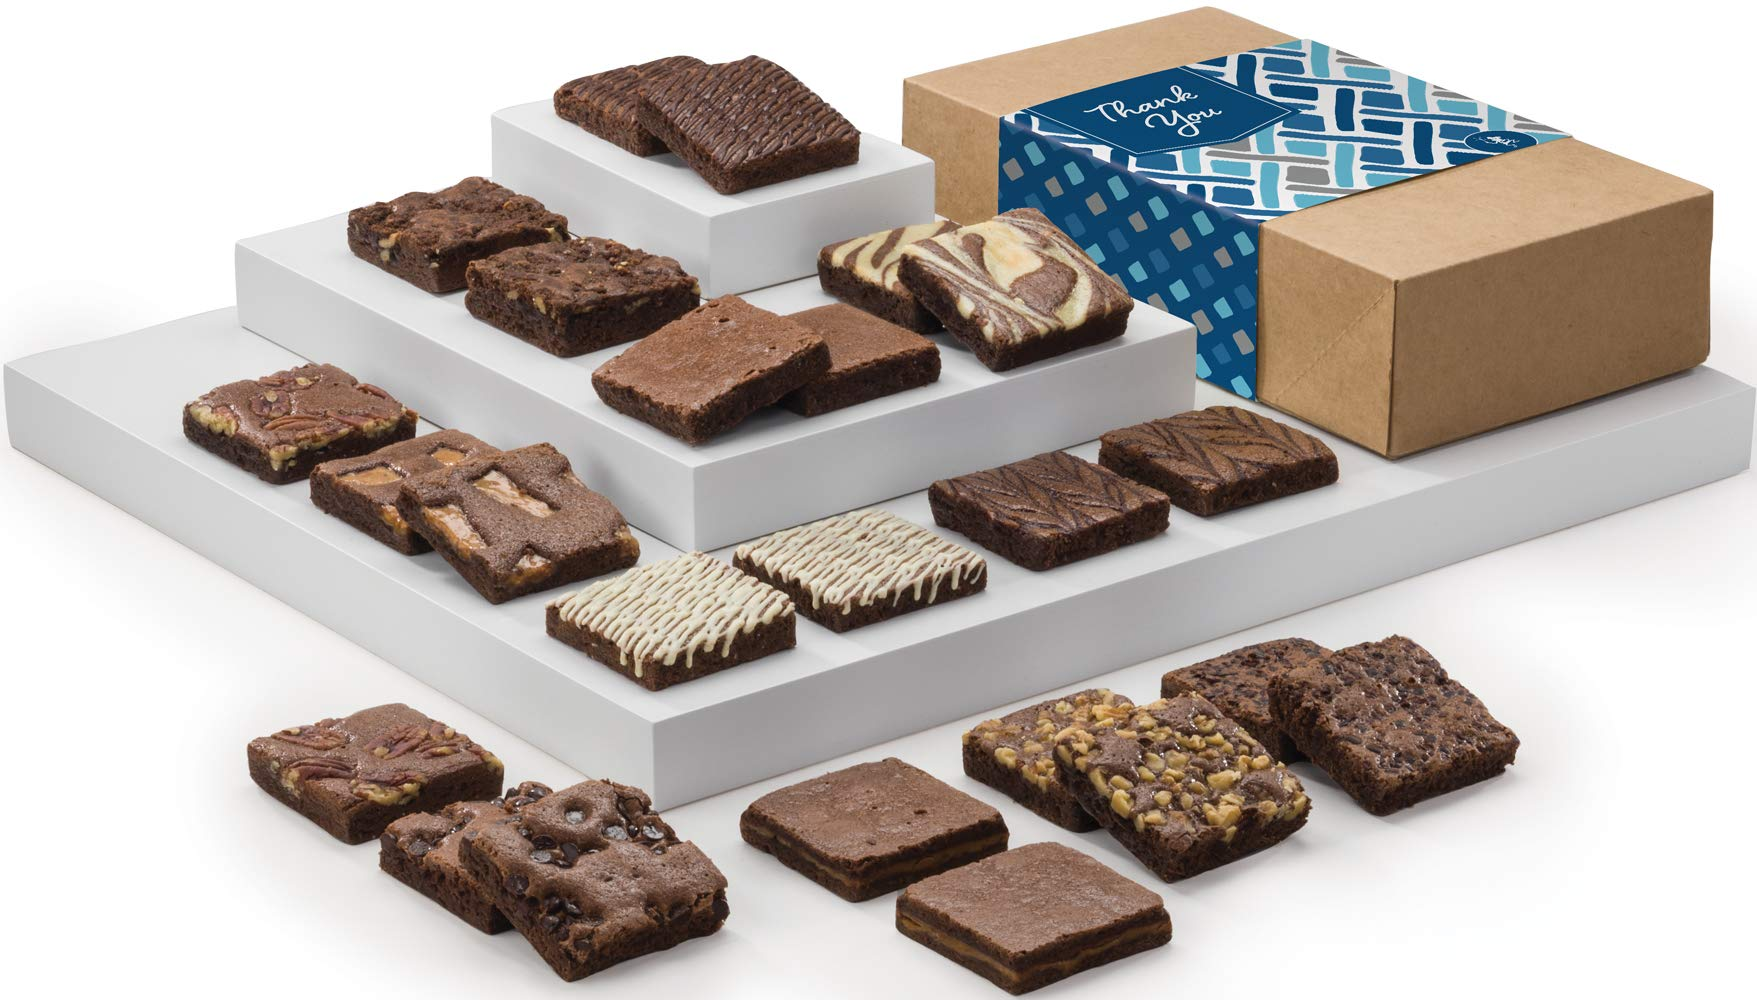 Fairytale Brownies Thank You Double Dozen Gourmet Chocolate Food Gift Basket - 3 Inch Square Full-Size Brownies - 24 Pieces - Item LY124